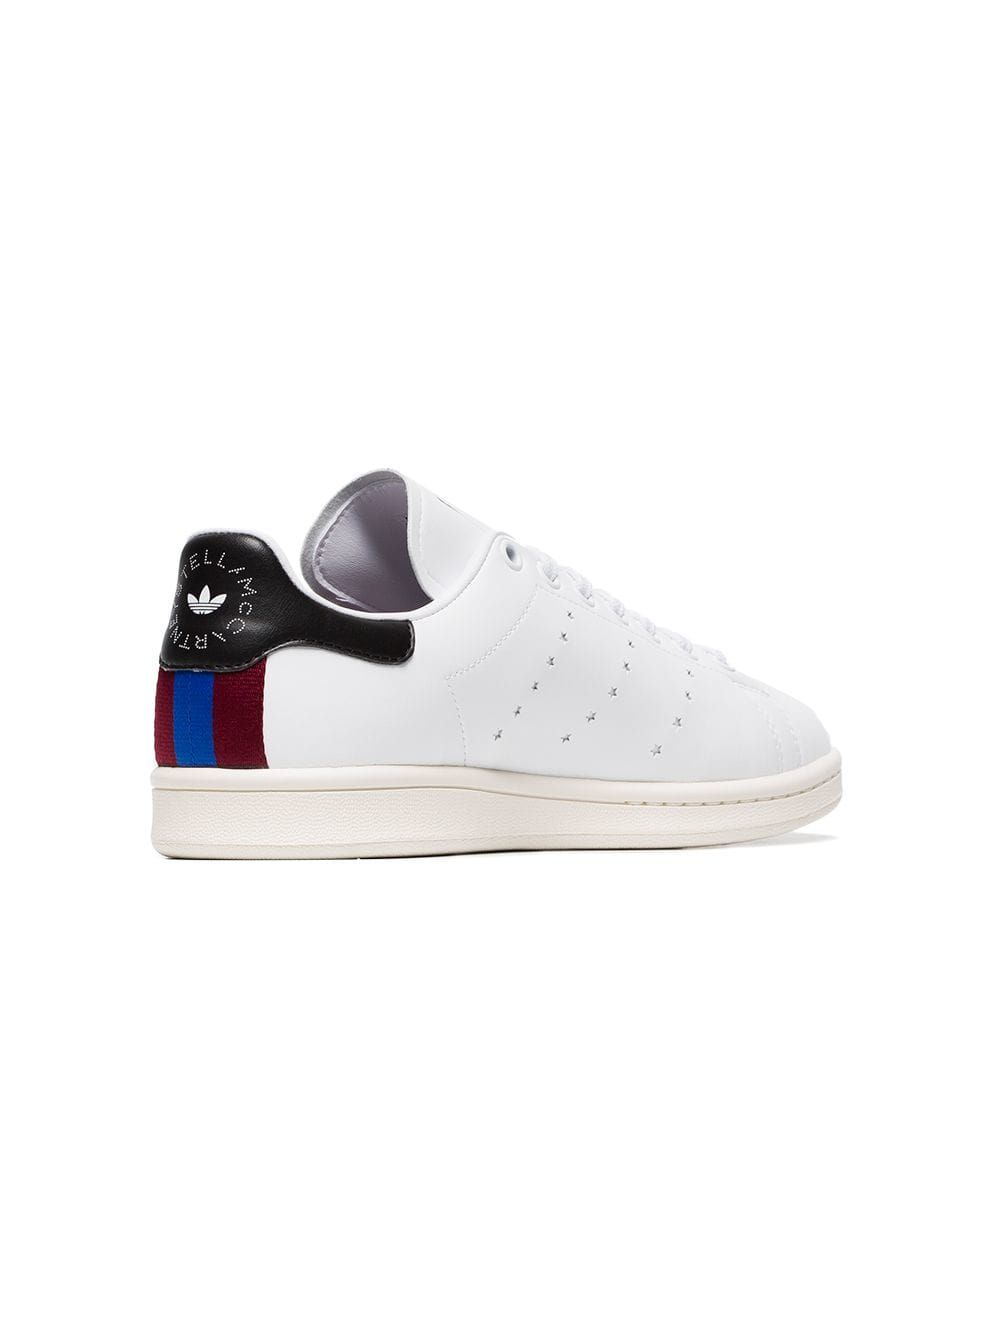 Stella McCartney White Stan Smith Sneakers | w i s h l i s t